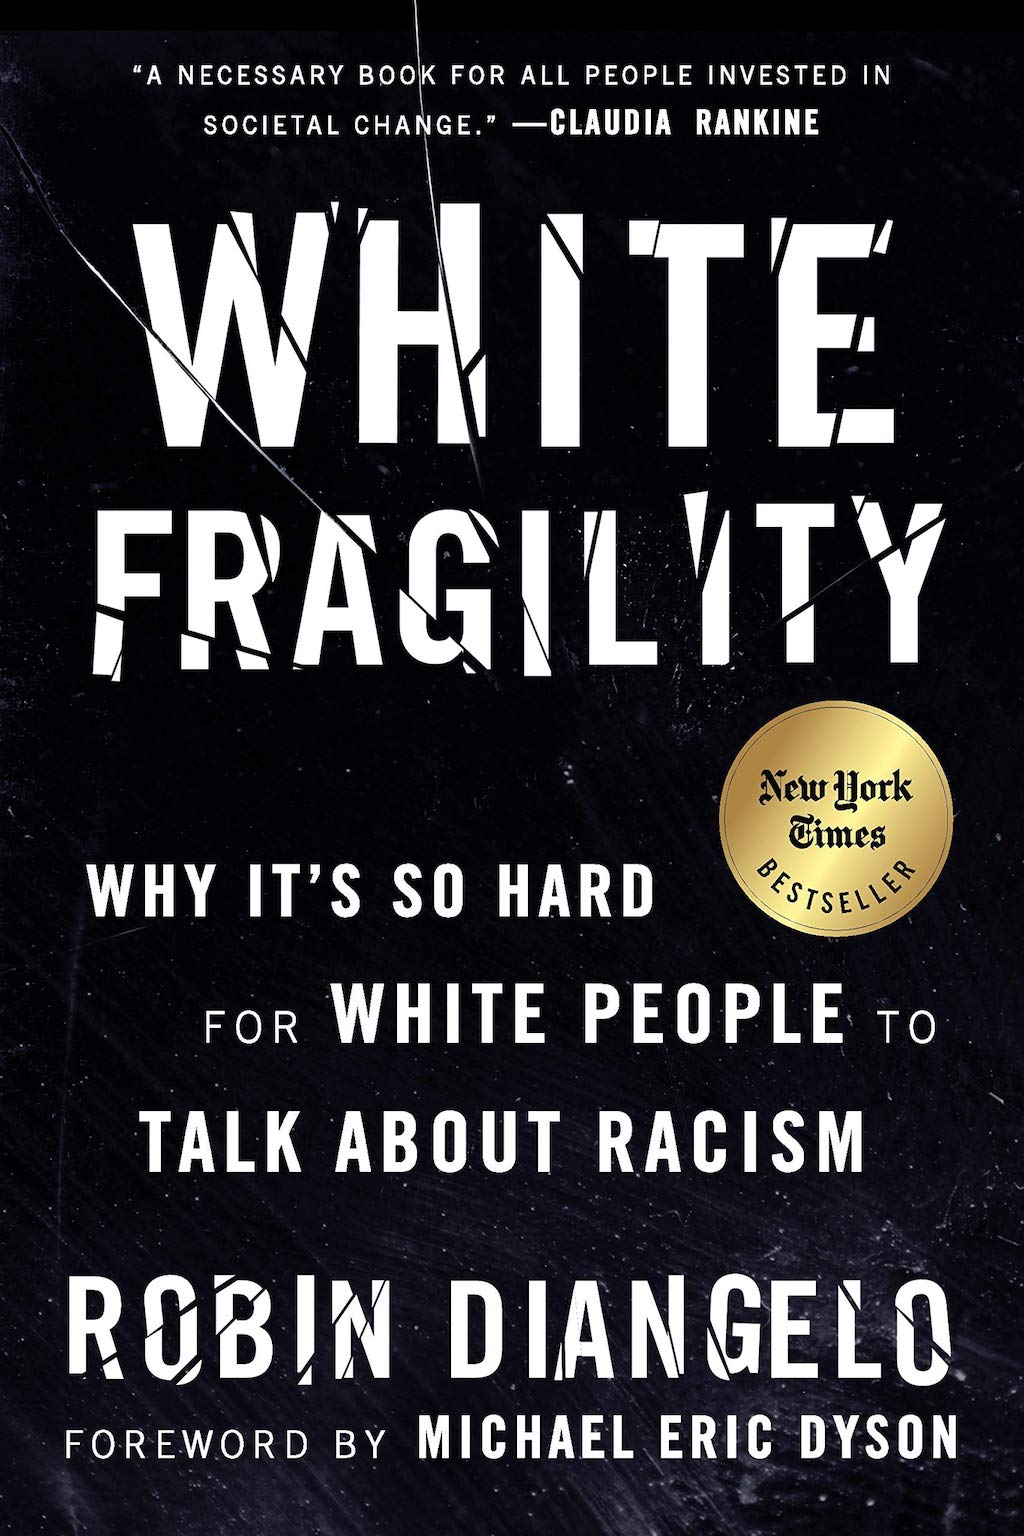 Cover art for the book White Fragility: Why it's So Hard for White People to Talk About Racism by Robin DiAngelo, part of list of inspiration sources for Mark Lomax II's 400: An Afrikan Epic